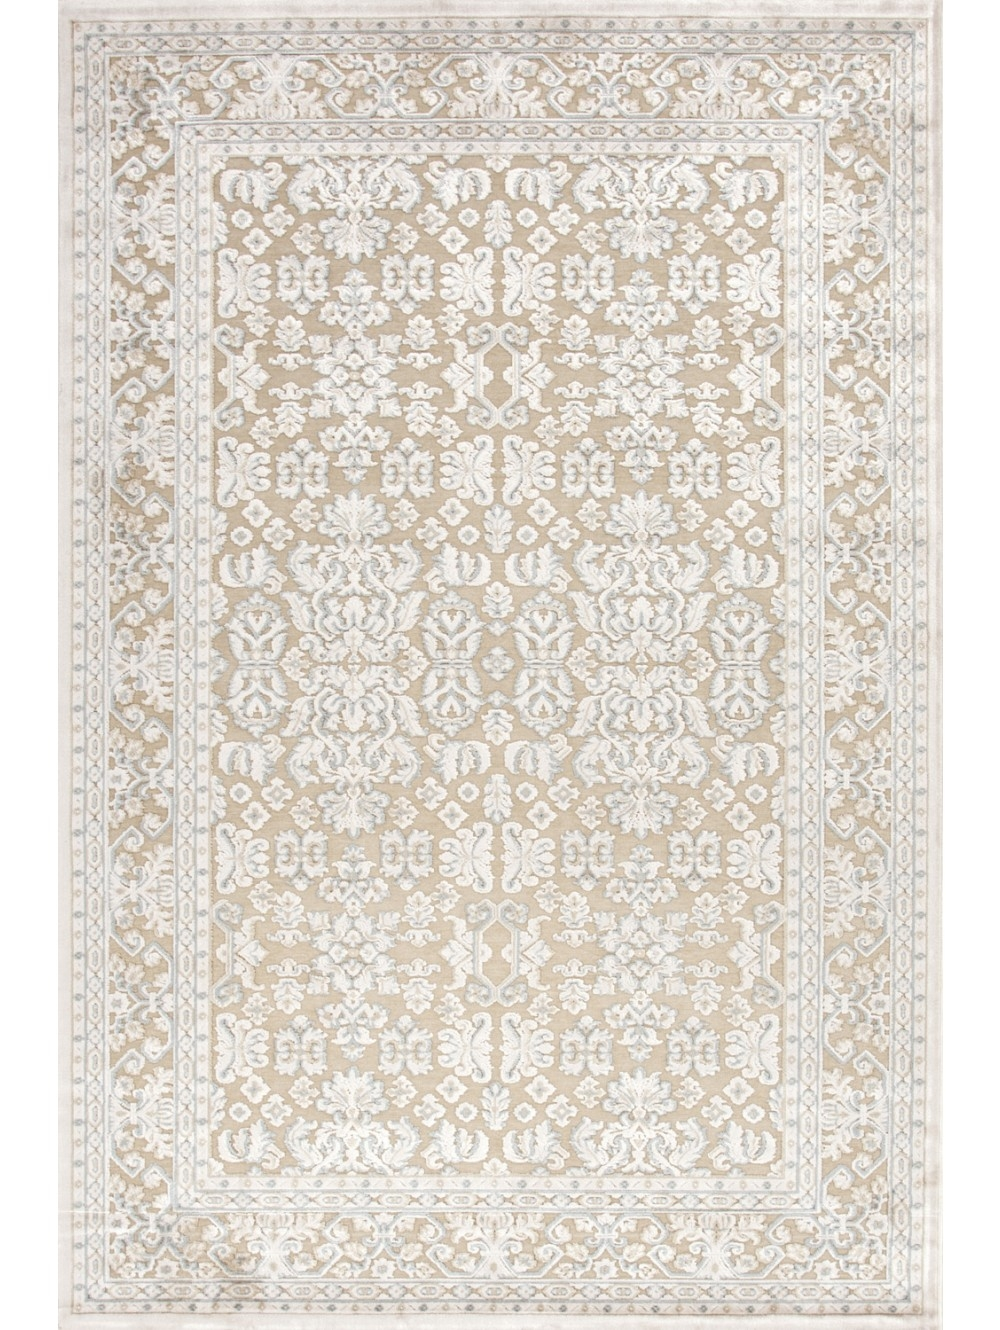 Cream Rugs Of Rug Runners Epic Rug Sale In Cream Rugs (Image 4 of 15)